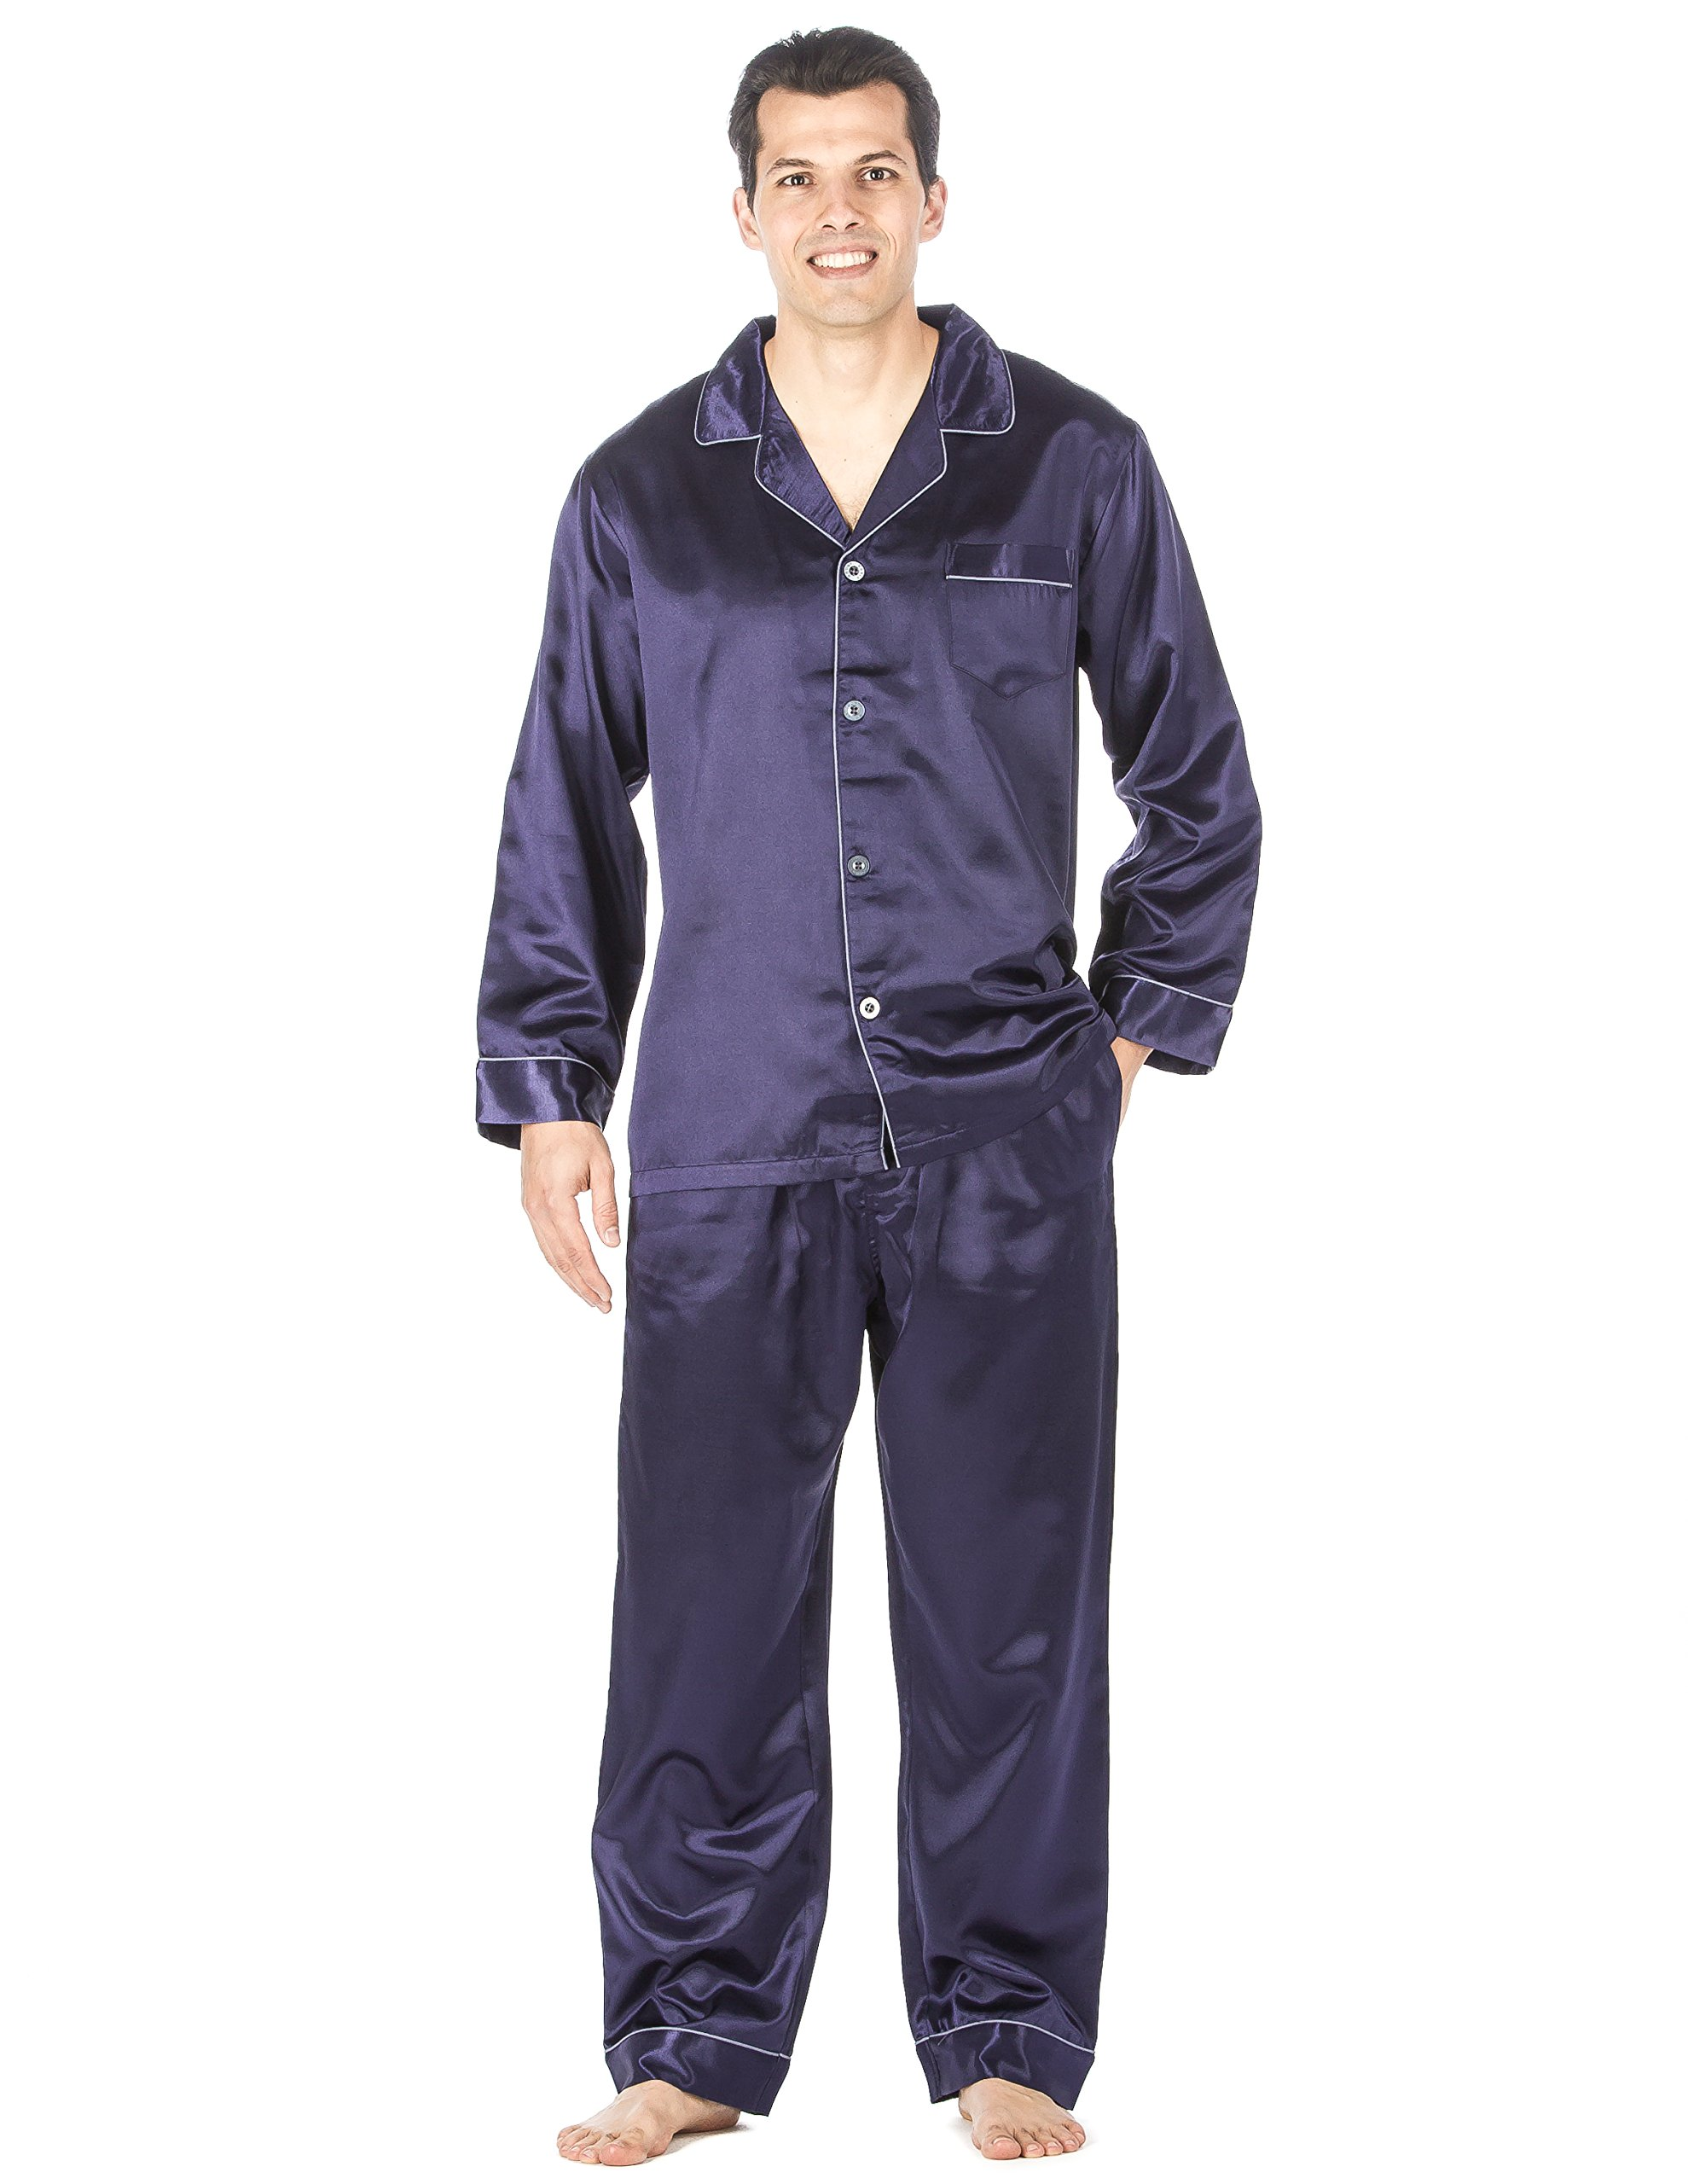 Noble Mount Mens Premium Satin Pajama Sleepwear Set - Dark Blue - Large